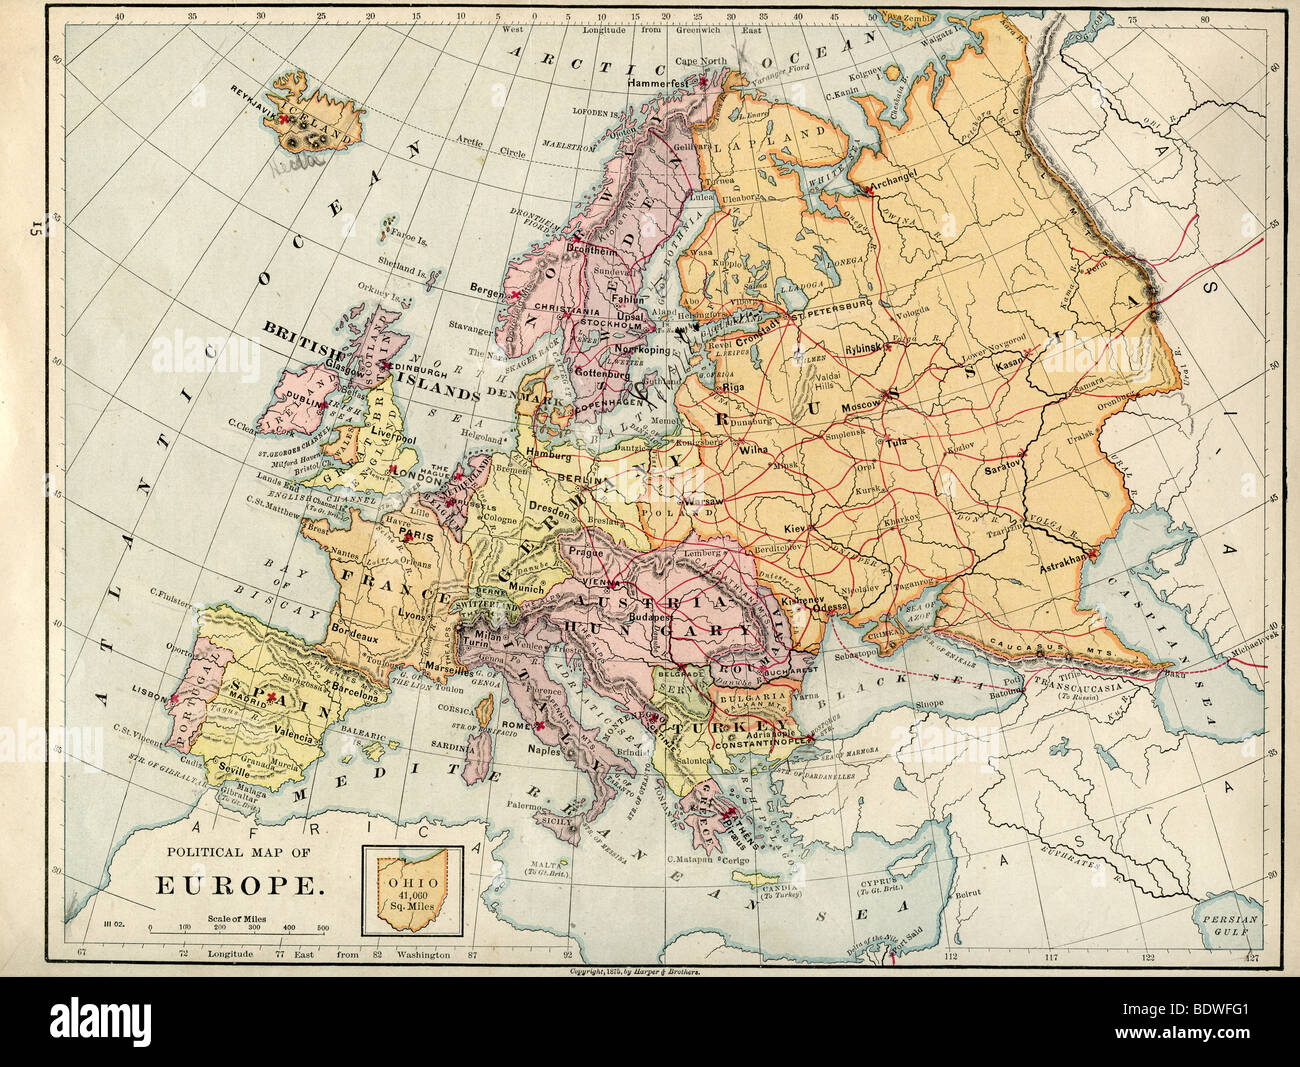 Vintage map europe stock photos vintage map europe stock images original old map of europe from 1875 geography textbook stock image gumiabroncs Gallery